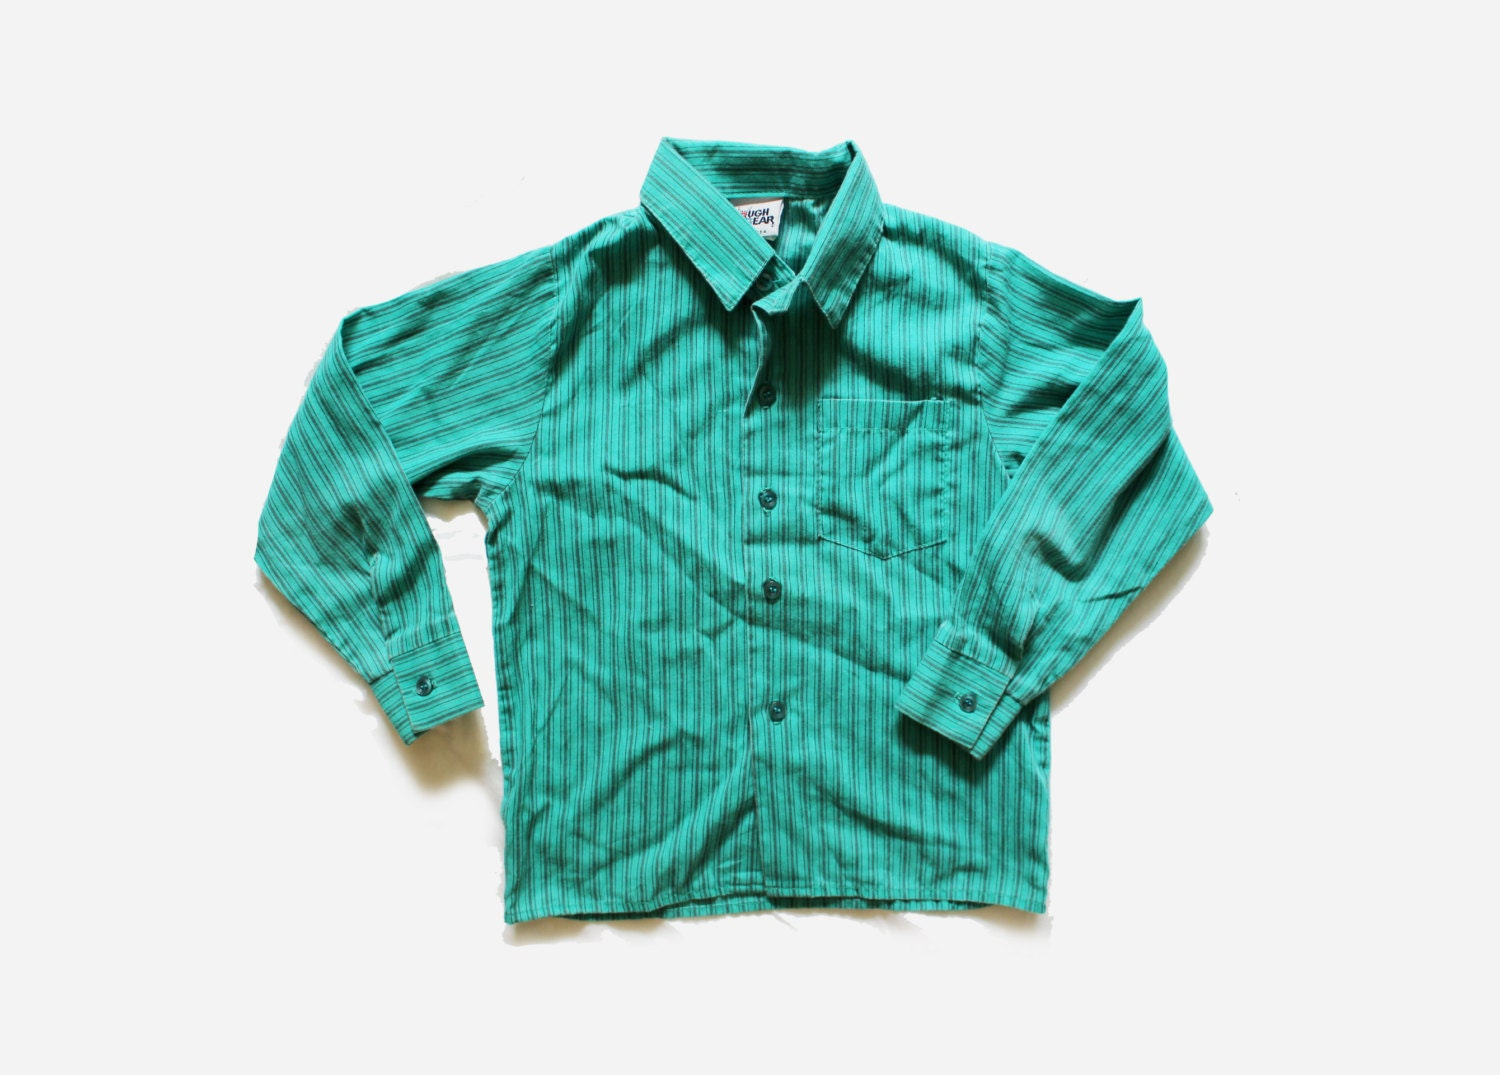 Vintage shirt boys 80s childrens clothing teal green striped for Boys teal t shirt